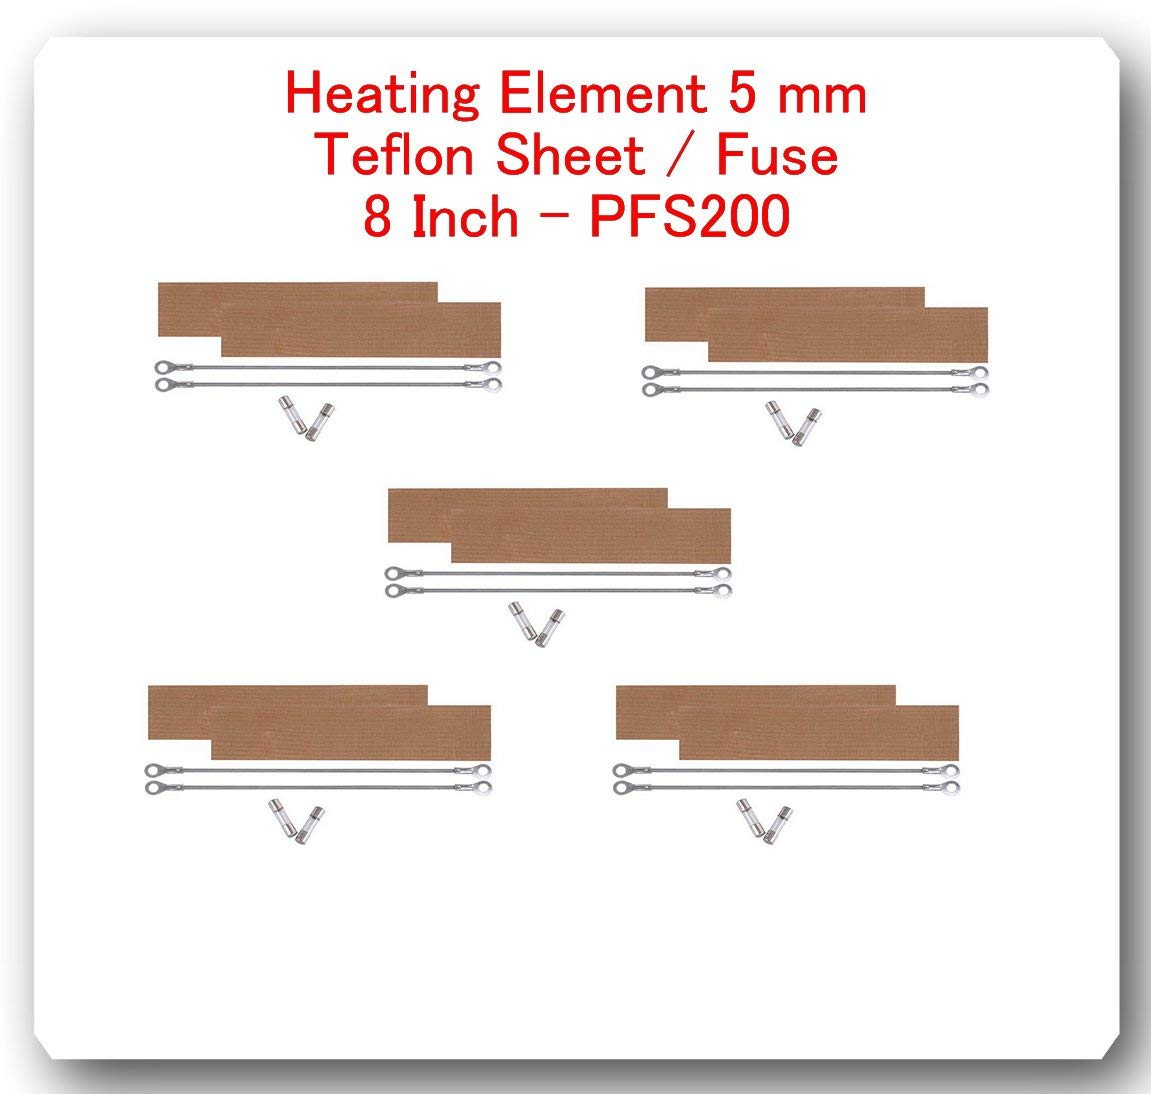 "(10 Kits) Replacement Elements for Impulse Sealer PFS-200 8""(10 Heating Elements 5 mm+ 10 Teflon Sheets & 10 Fuses)"